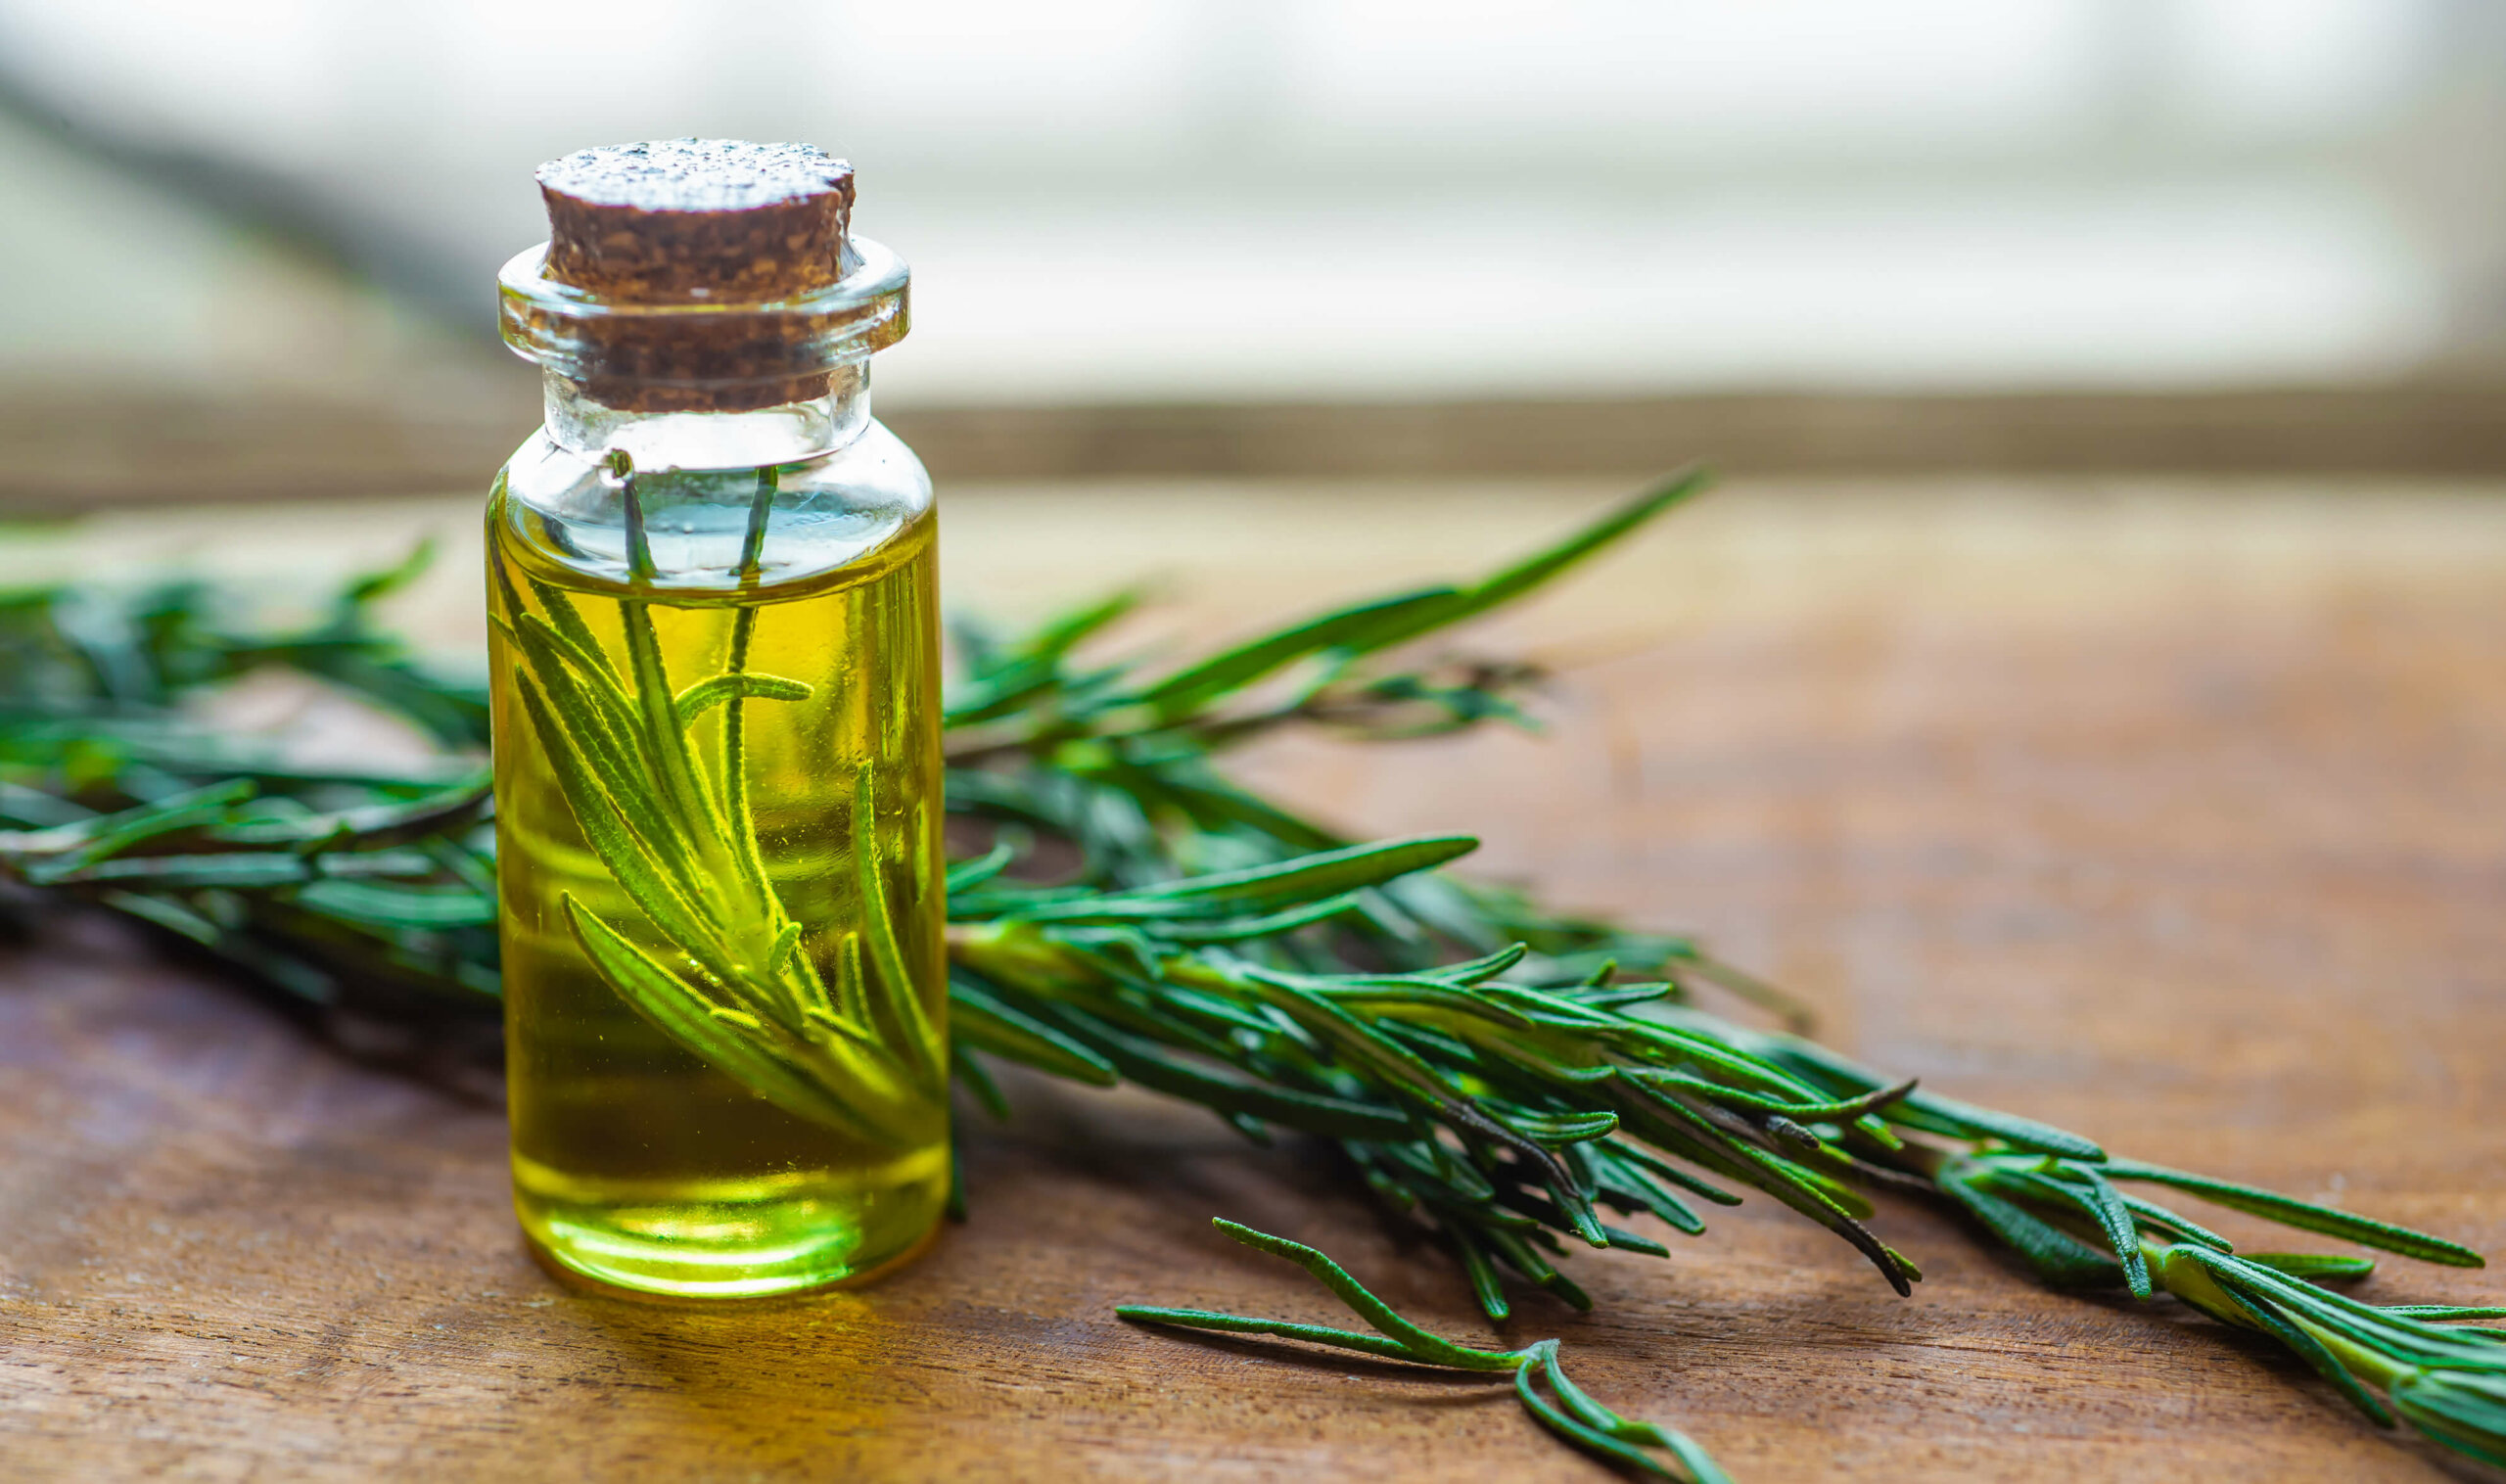 Sprigs of rosemary next to a small container of rosemary-infused oil